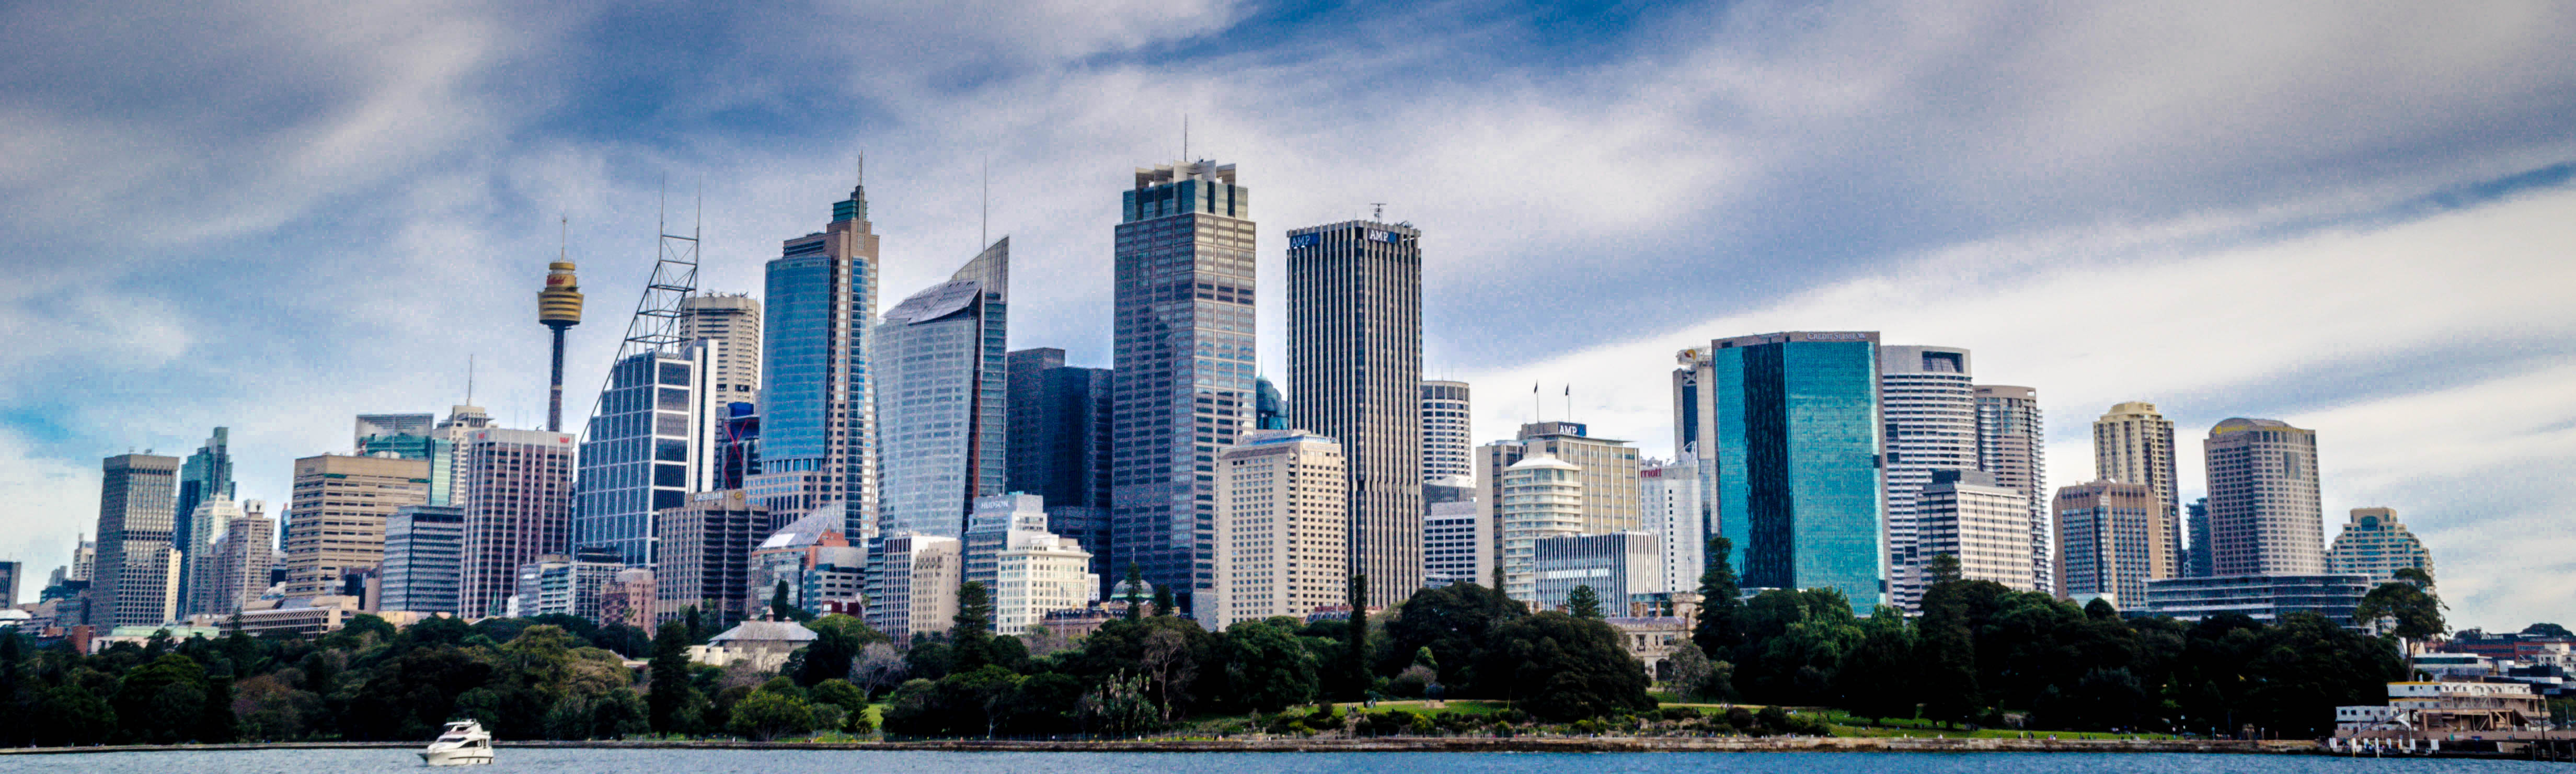 Sydney_City_Business_District.jpg